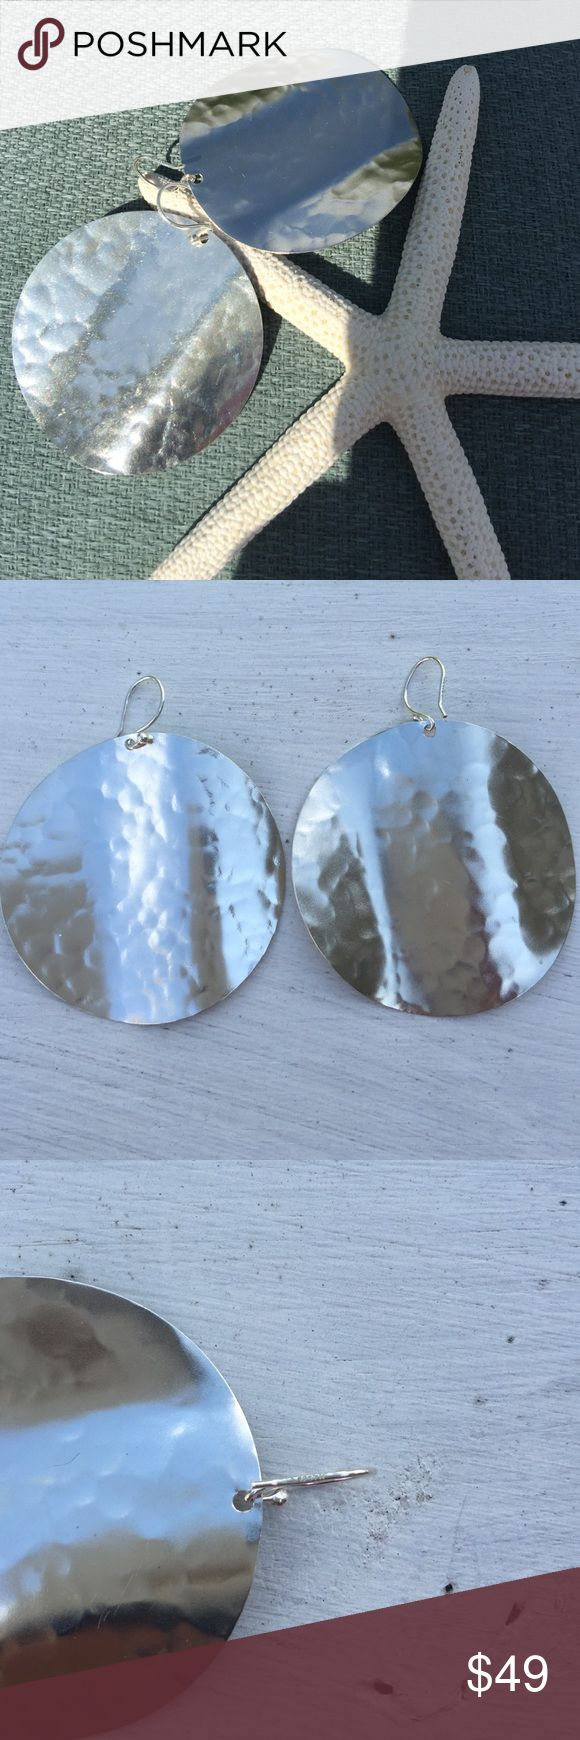 Silpada earrings Large  Silpada hammered  sterling silver earrings with French wire. Great condition! Silpada Jewelry Earrings